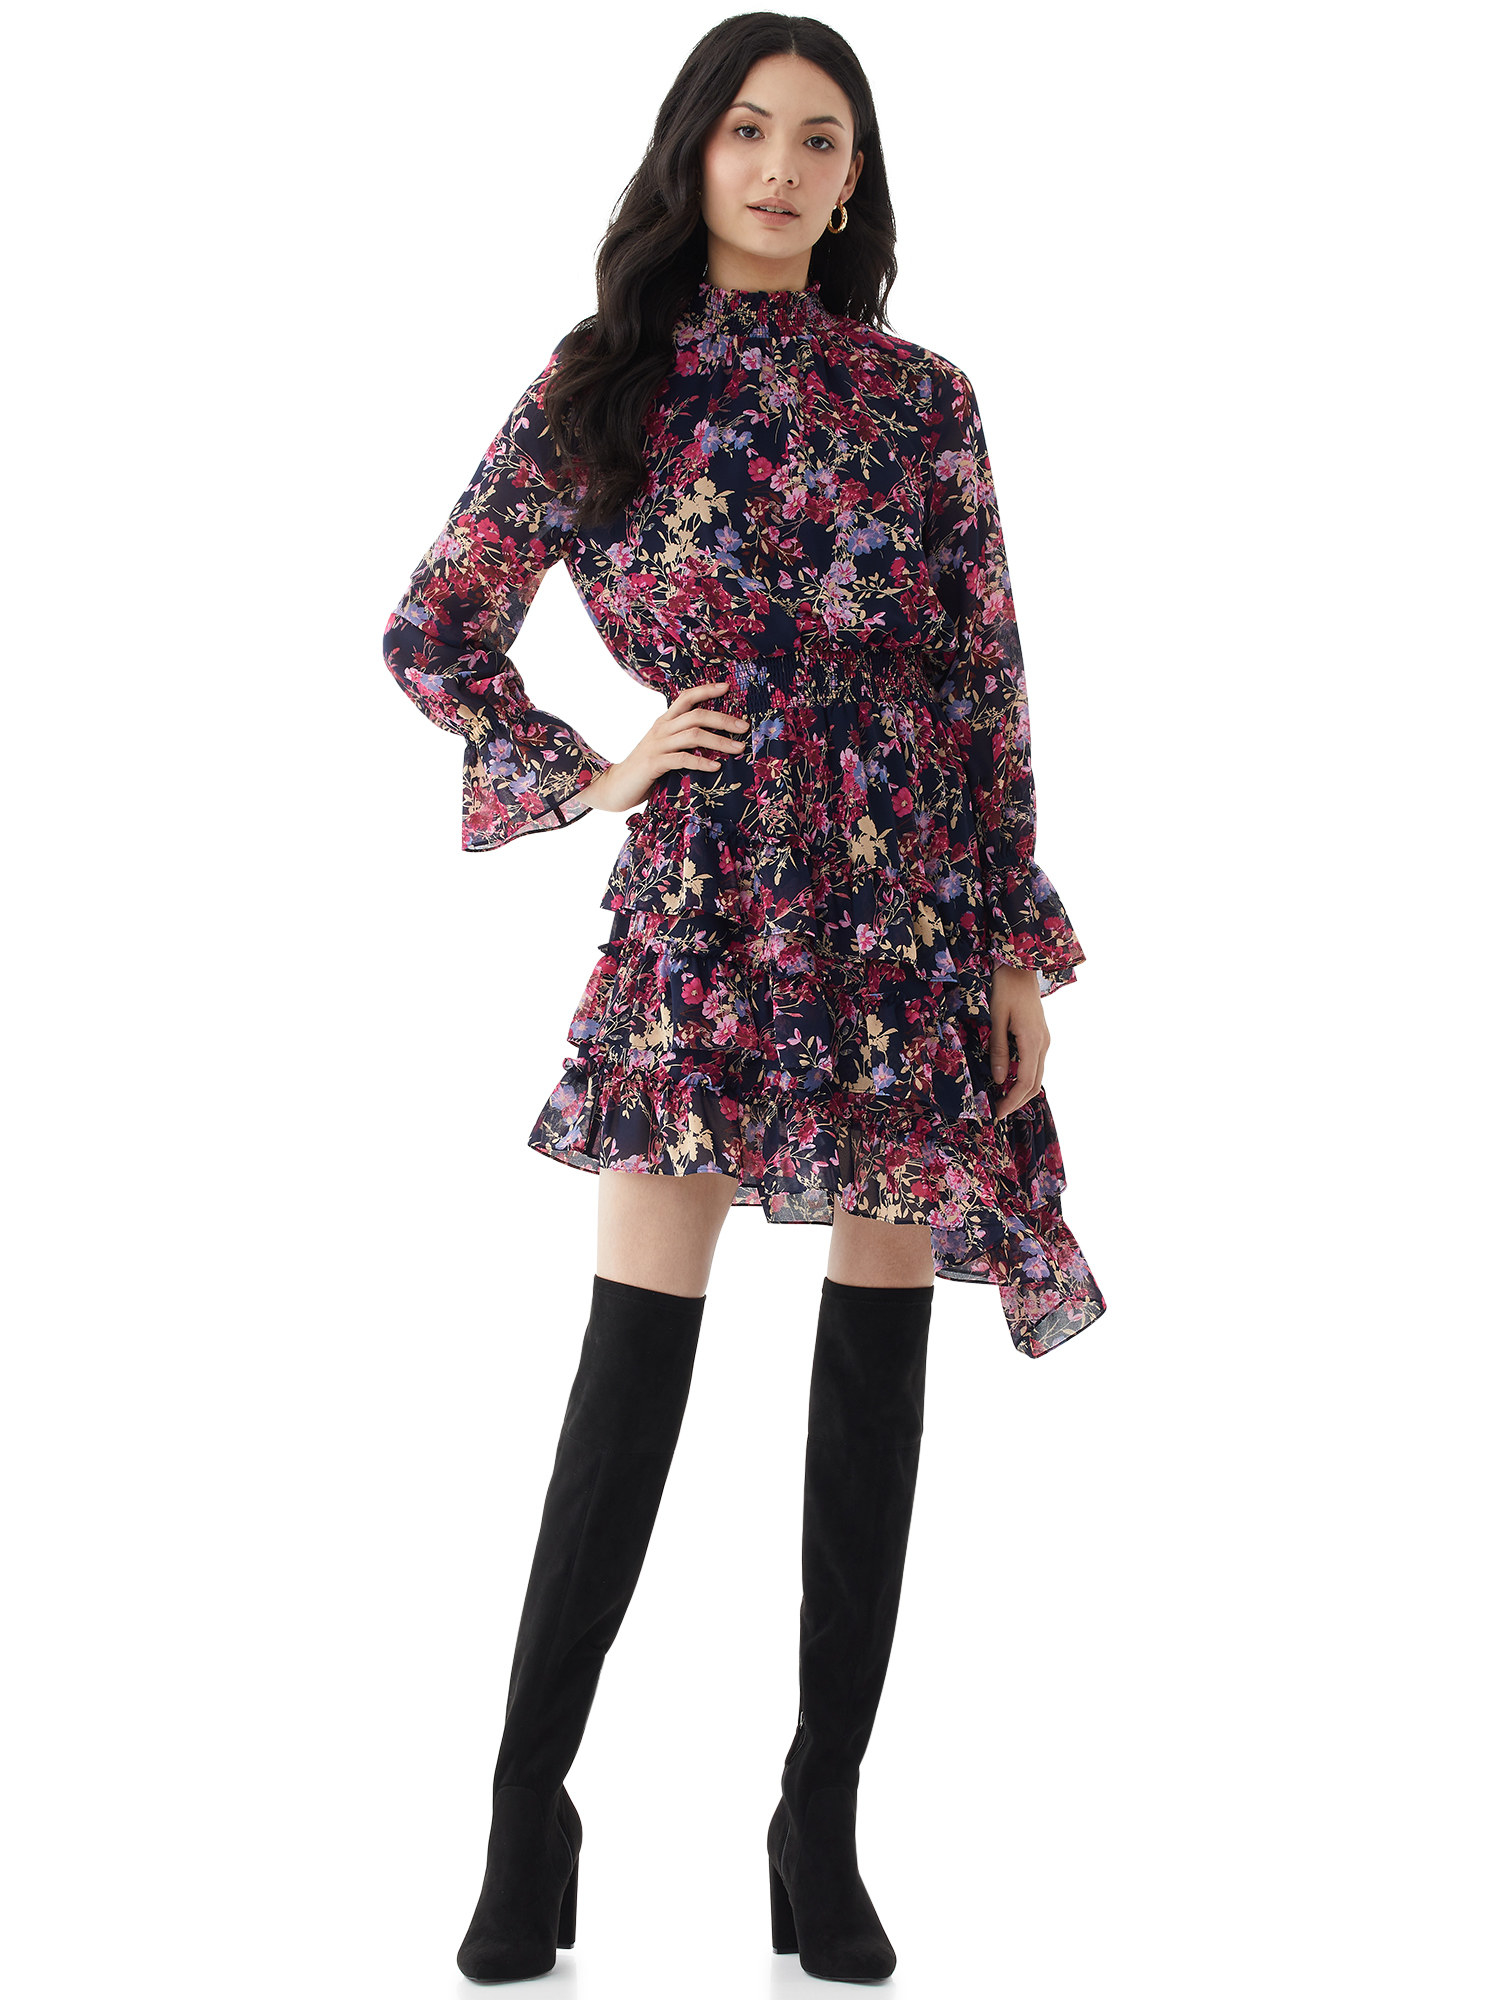 Model in asymmetrical floral dress